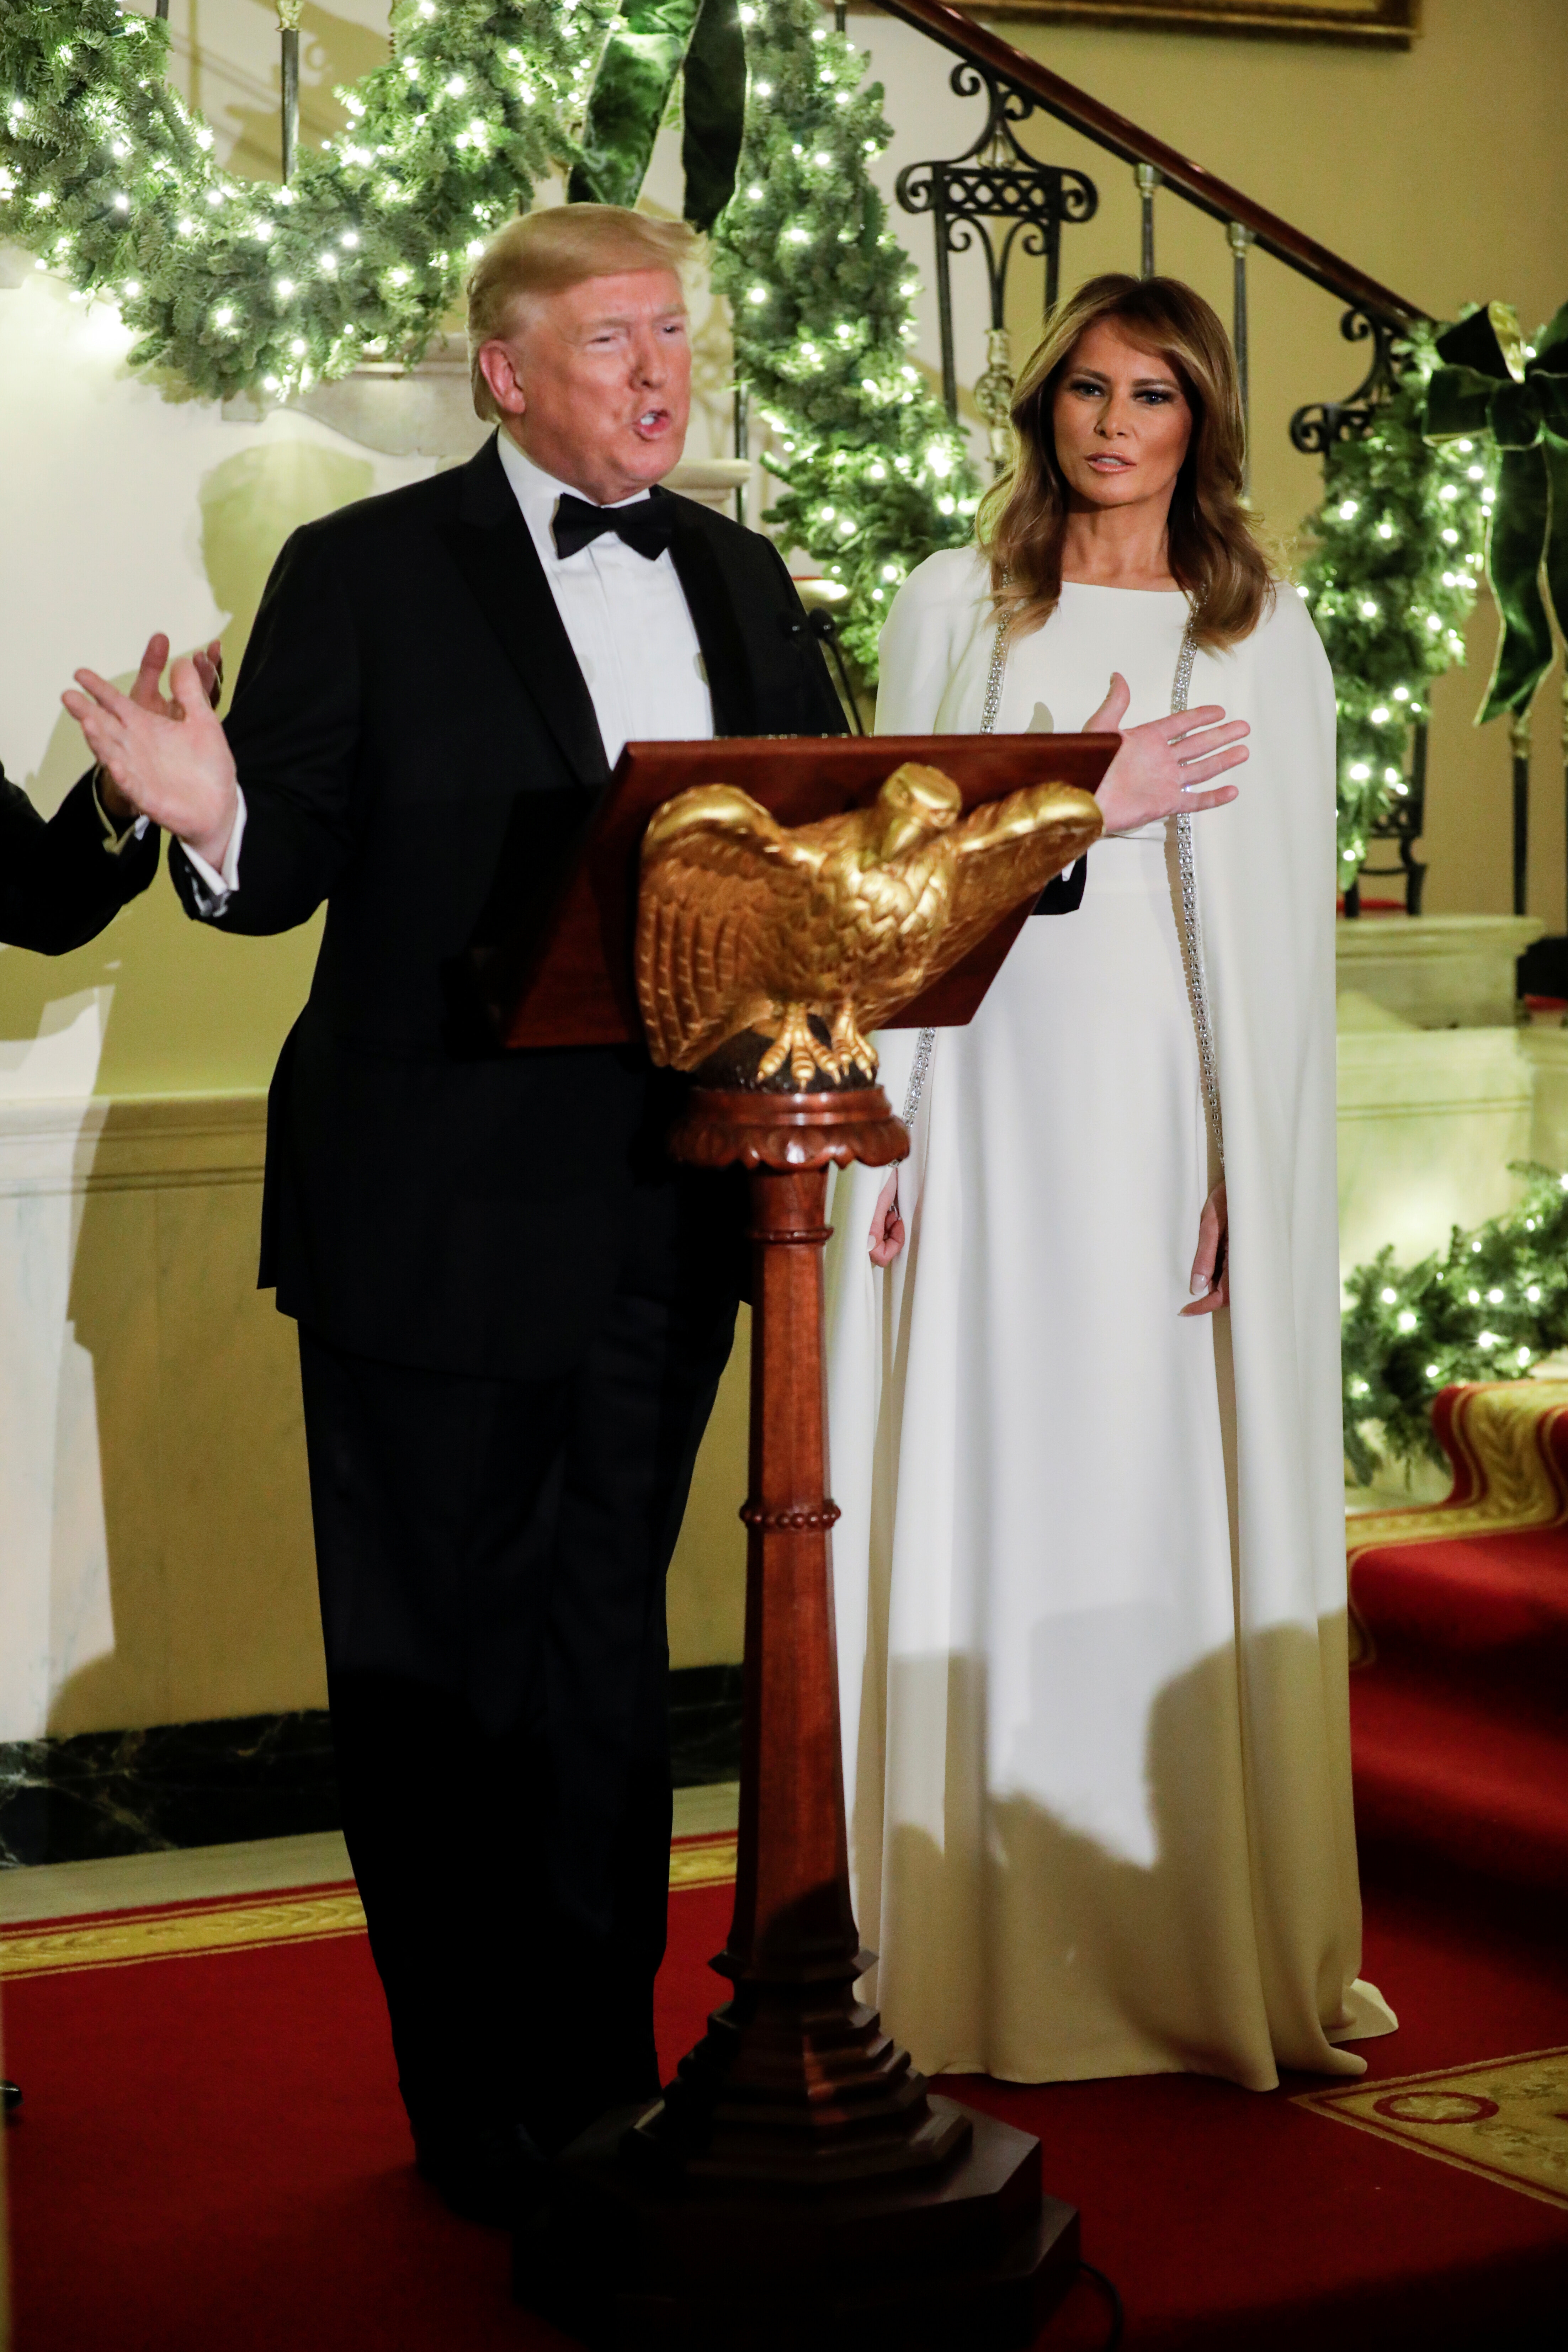 US President Donald Trump and First Lady Melania Trump at the Congressional Ball in Washington